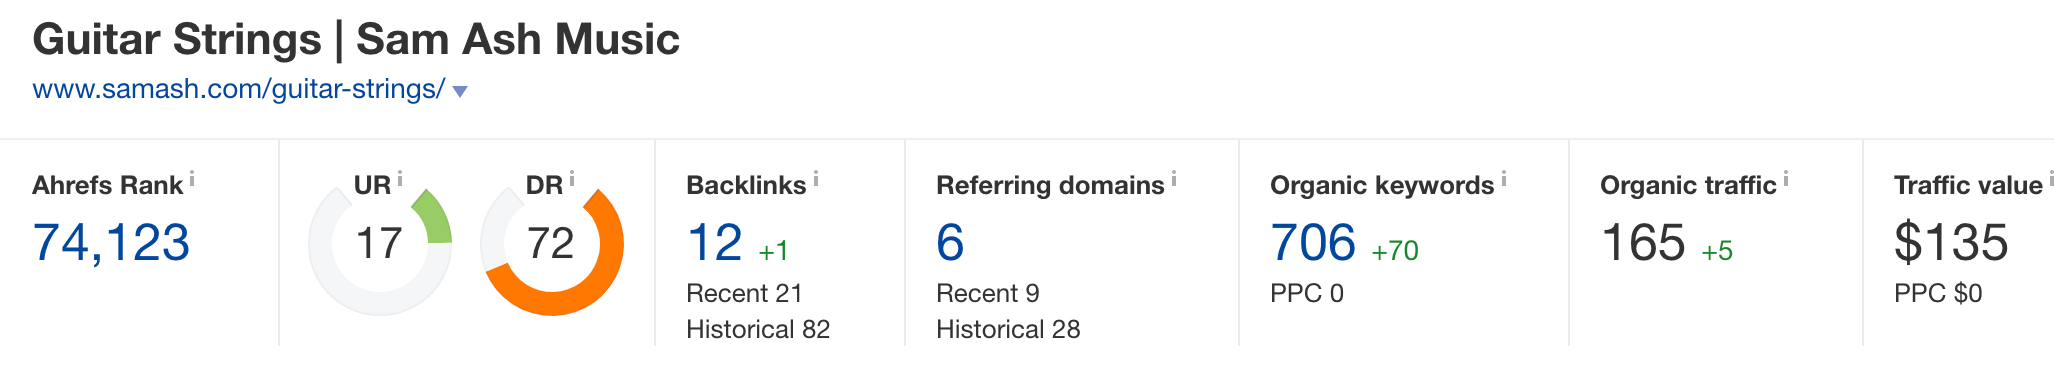 How Samashcom Is Failing At Seo Nick Eubanks Guitar Strings Diagram My First Thoughts Are 12 Links From 6 Domains Not Great But Terrible Least There Some Deep To This Page When We Look Closer